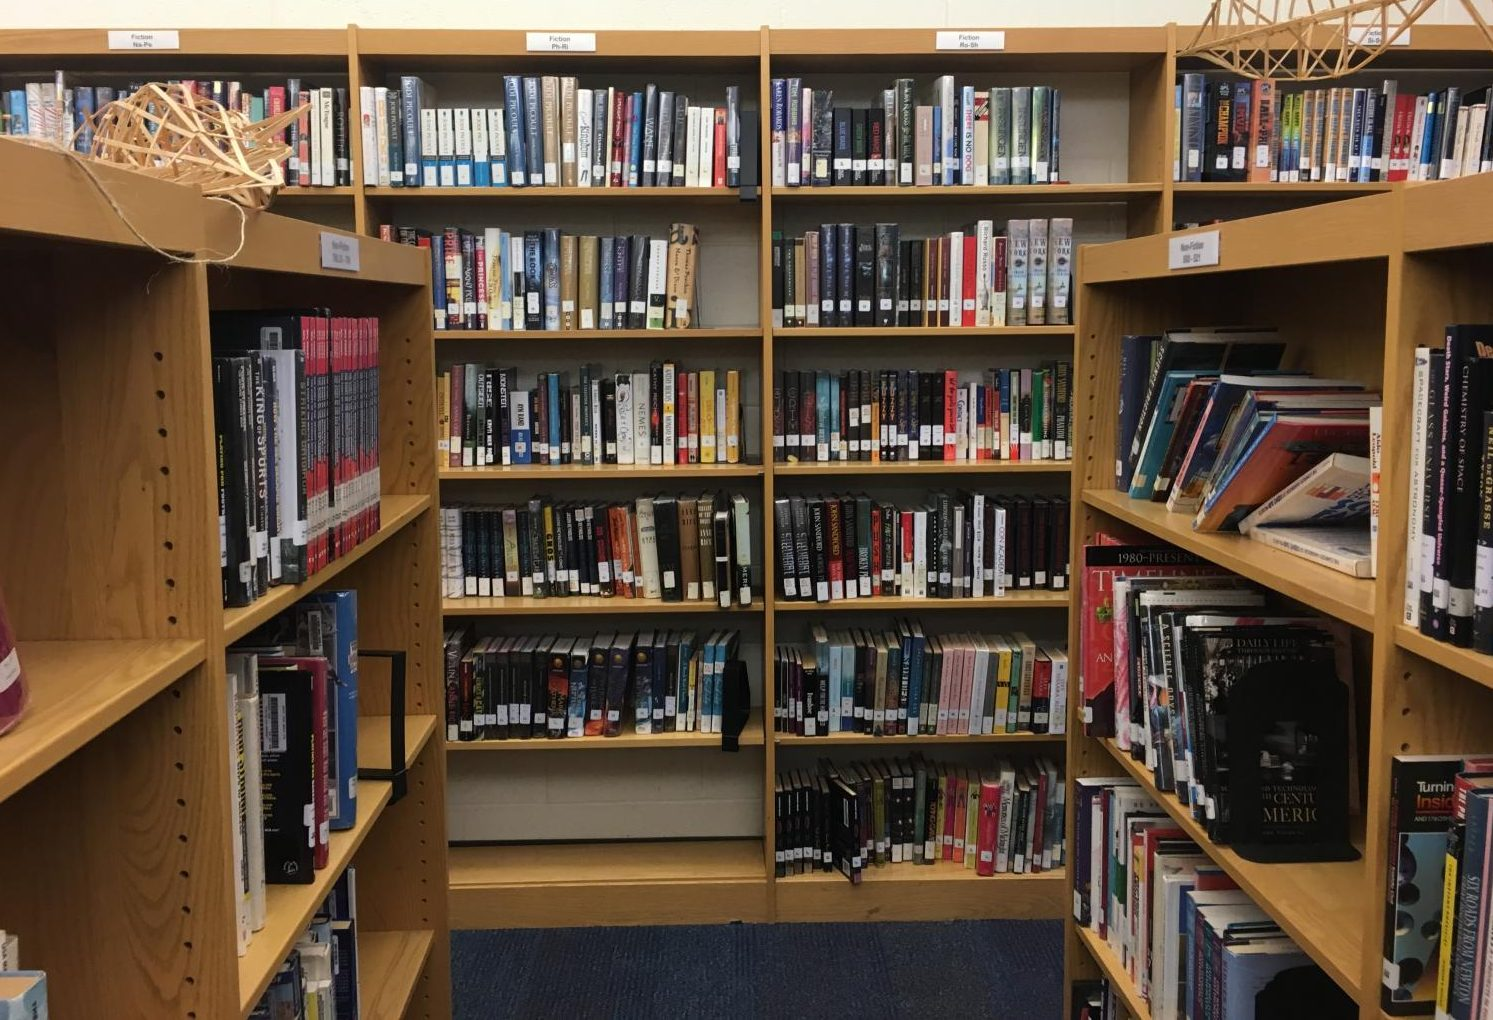 The goal of Atlanta Public Schools Superintendent  Dr. Meria Carstarphen is to bring more students to places like the Grady library to read.